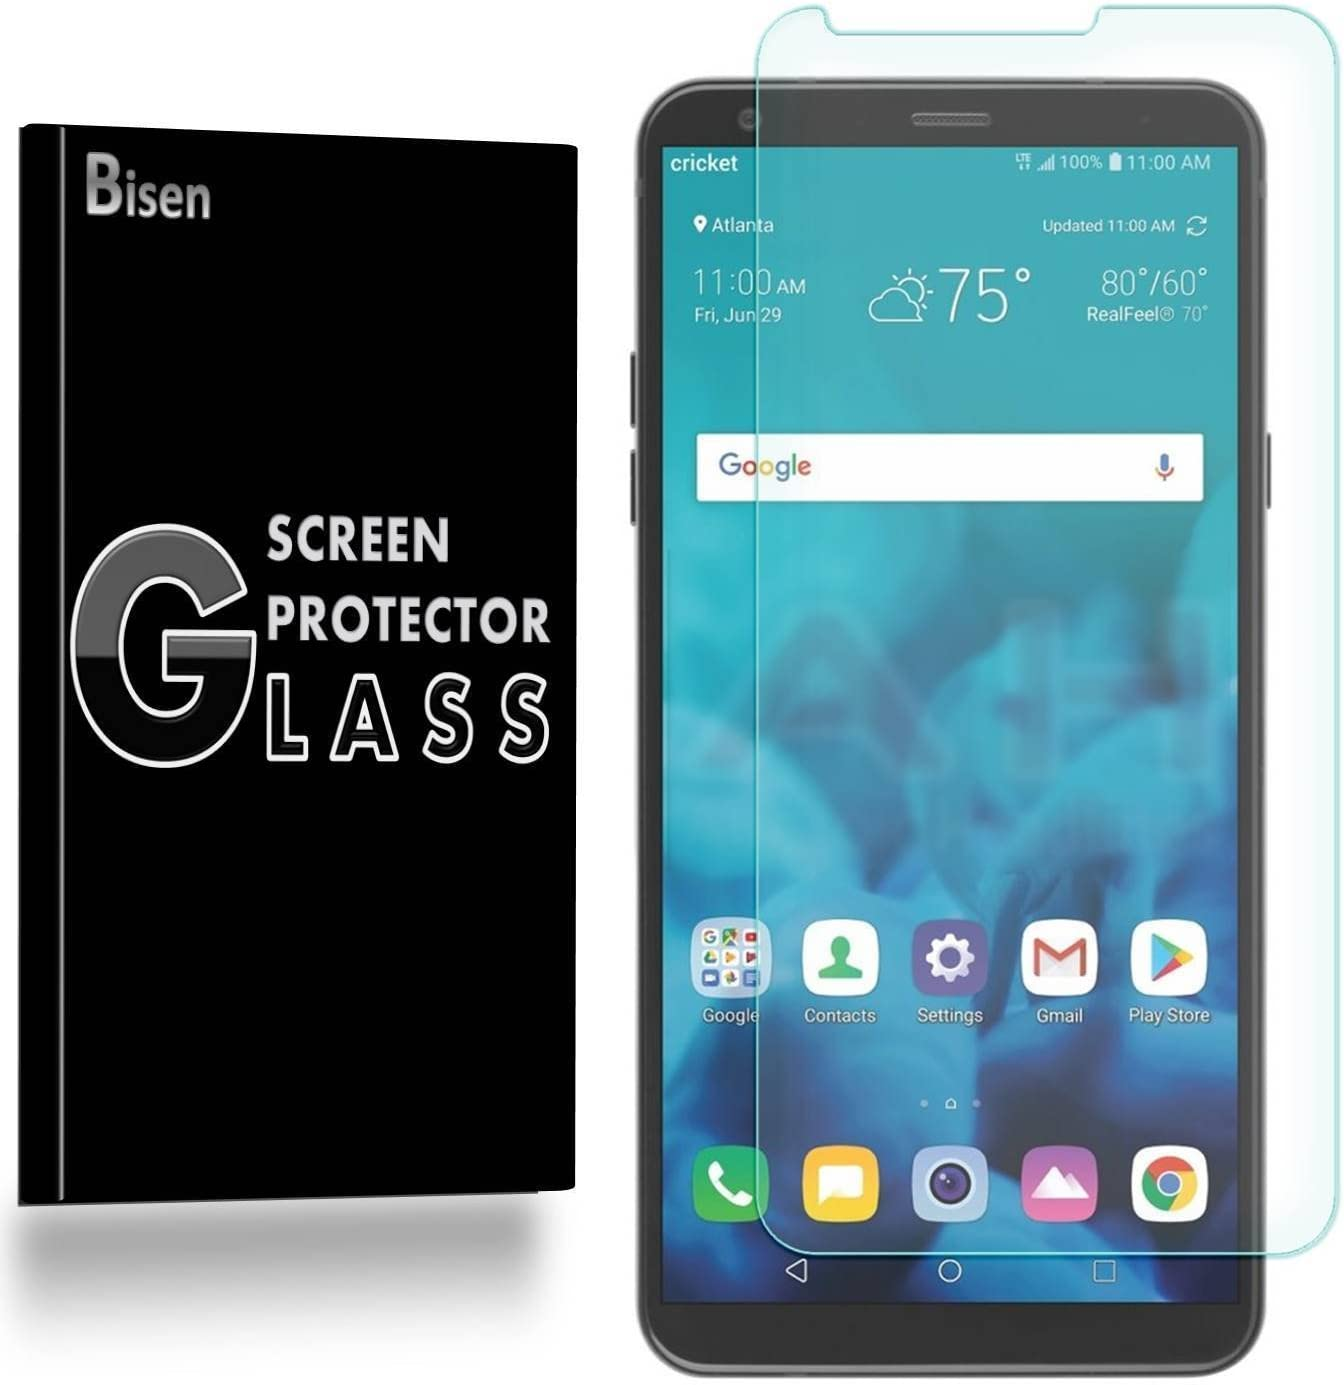 [3-PACK BISEN] LG Stylo 4 Screen Protector Tempered Glass, Anti-Scratch, Anti-Fingerprint, Anti-Bubble, Lifetime Protection